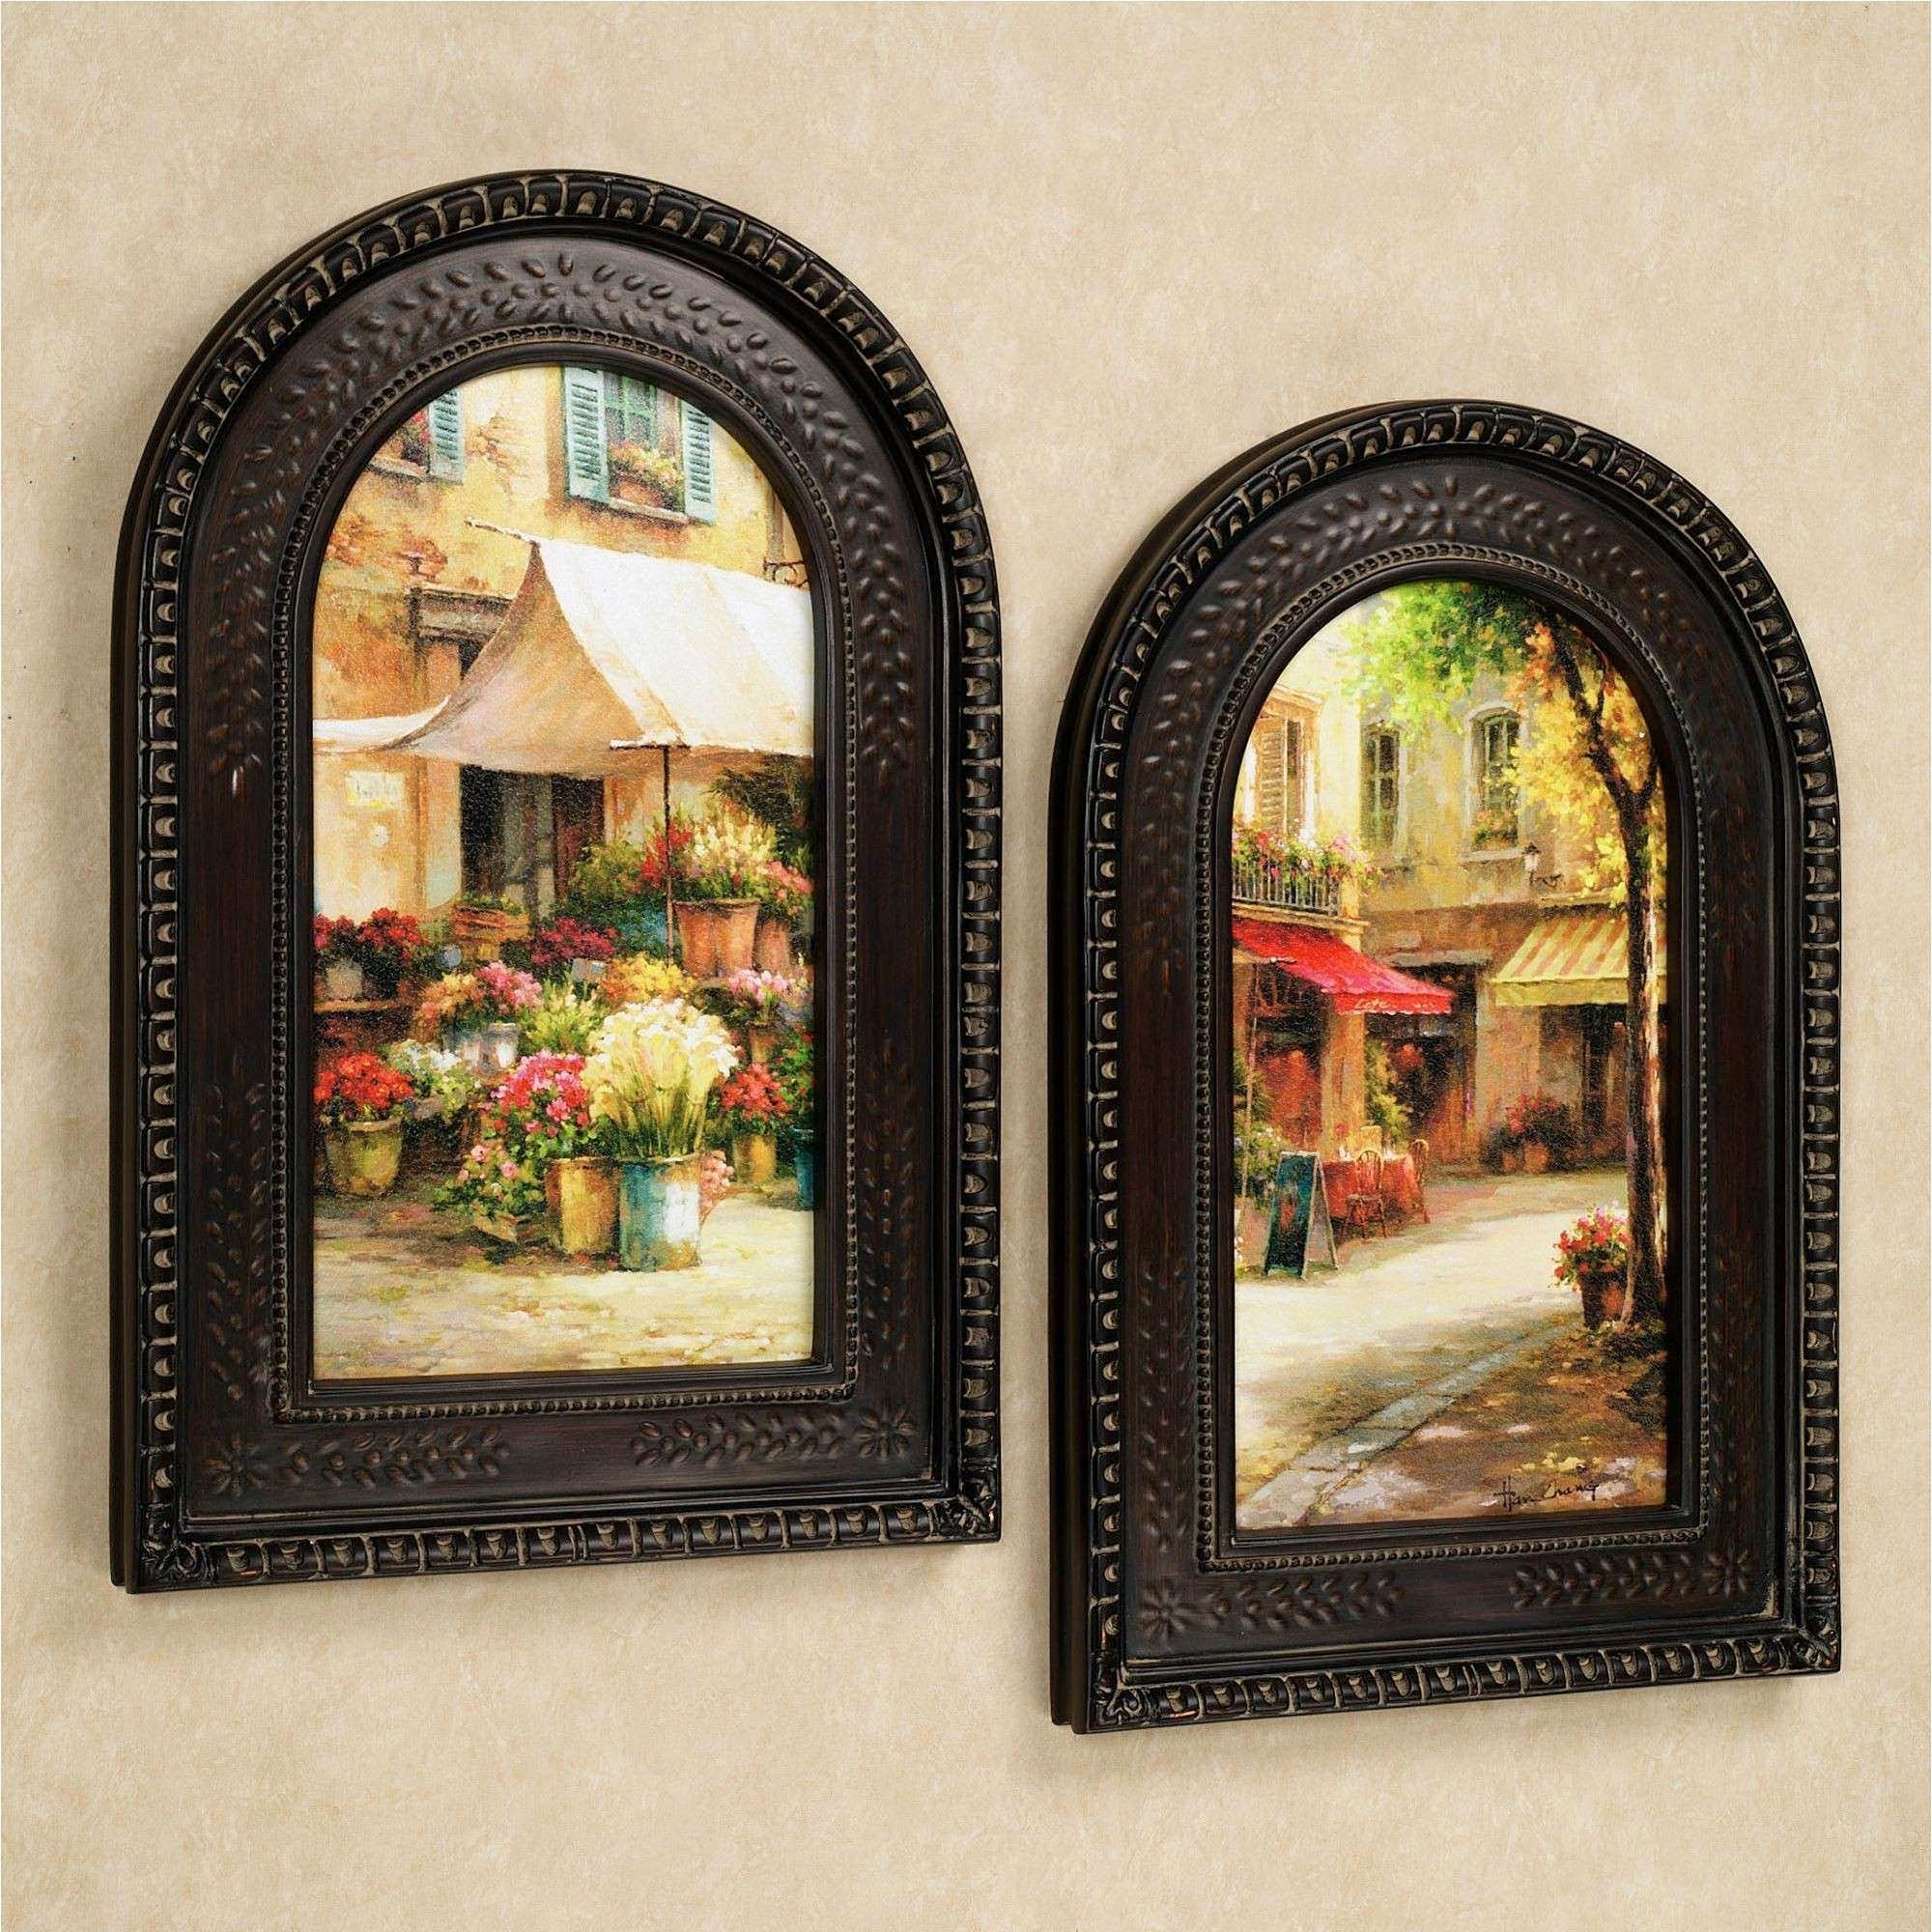 Tuscan Wall Art New The Flower Market Arched Framed Wall Art Set Inside 2017 Tuscan Wall Art (View 19 of 20)